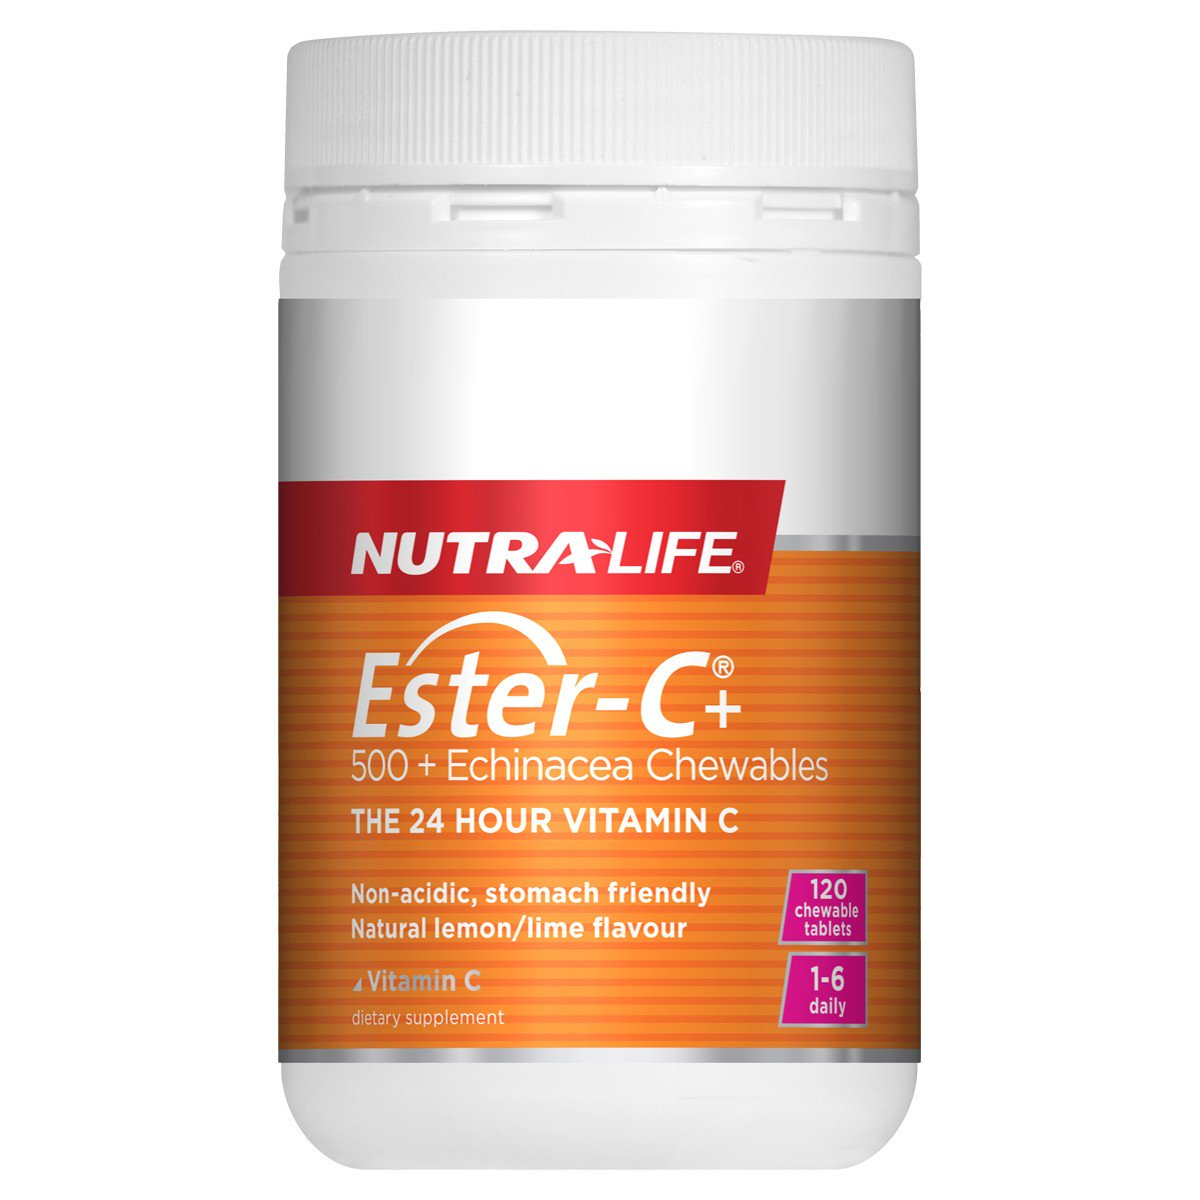 Nutra-Life Ester-C Echinacea Chewables